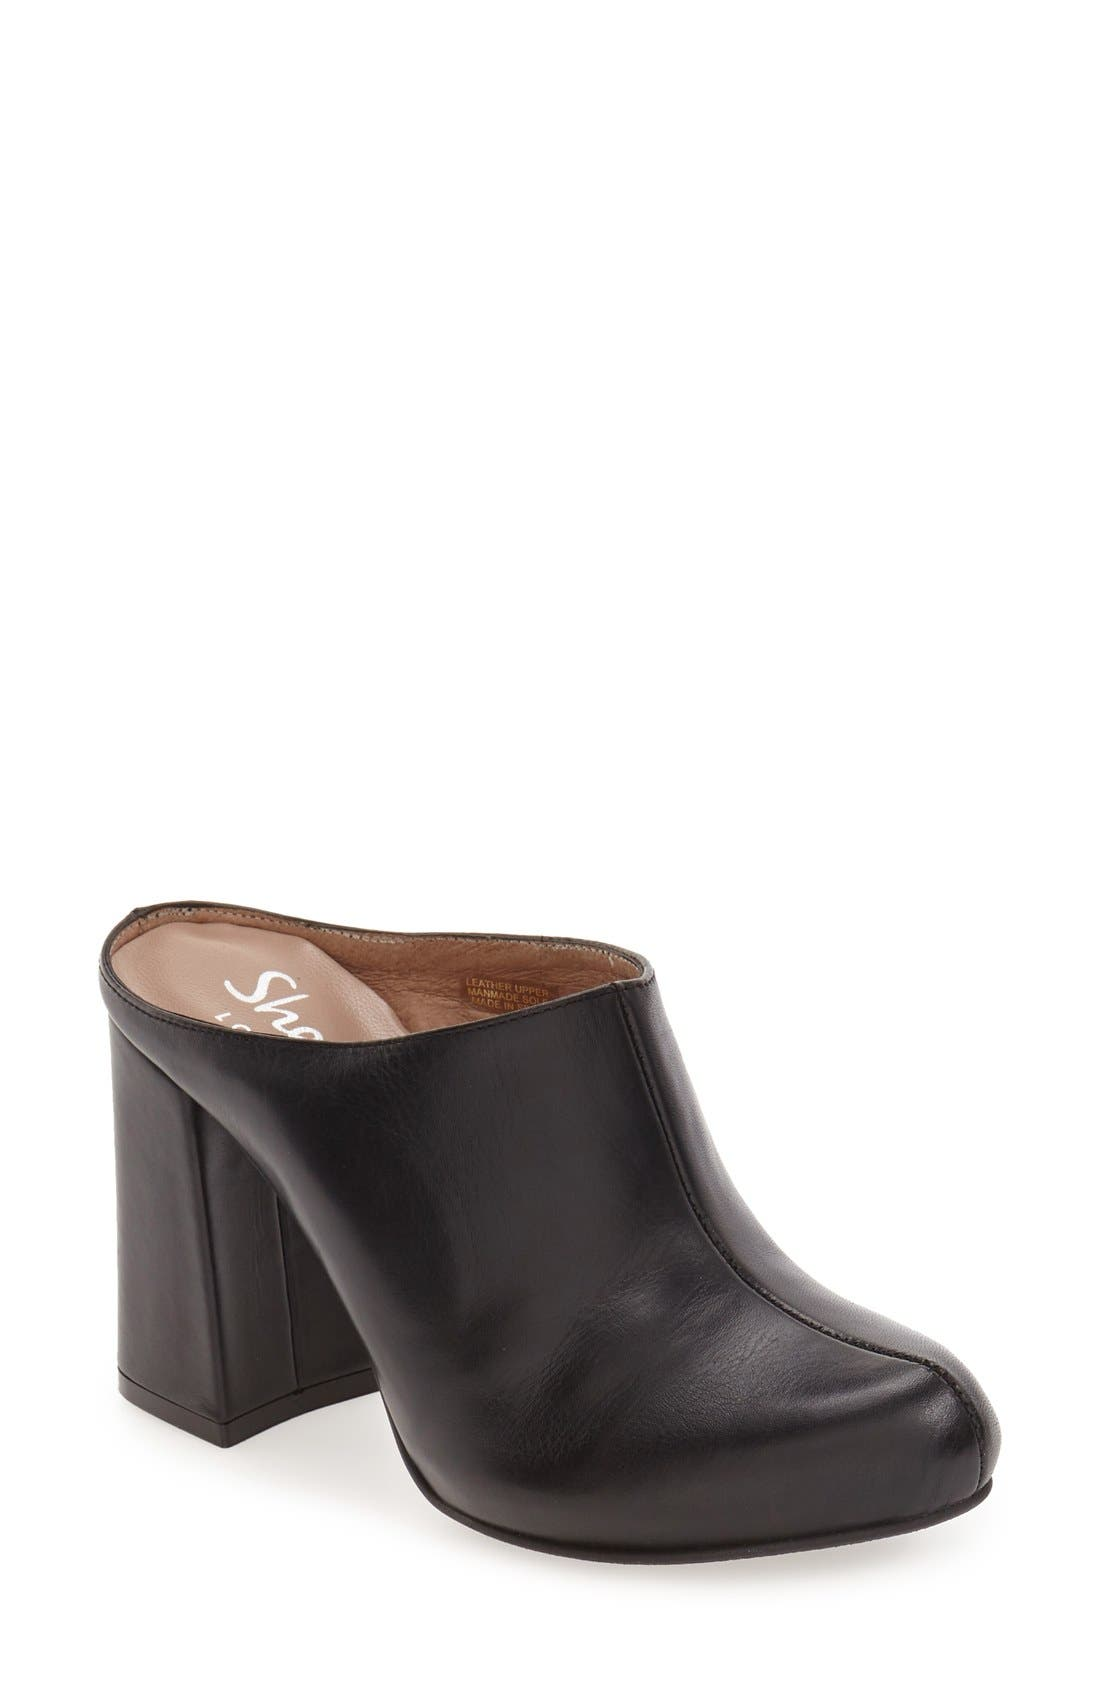 Main Image - Shellys London 'Kylie' Mule (Women)